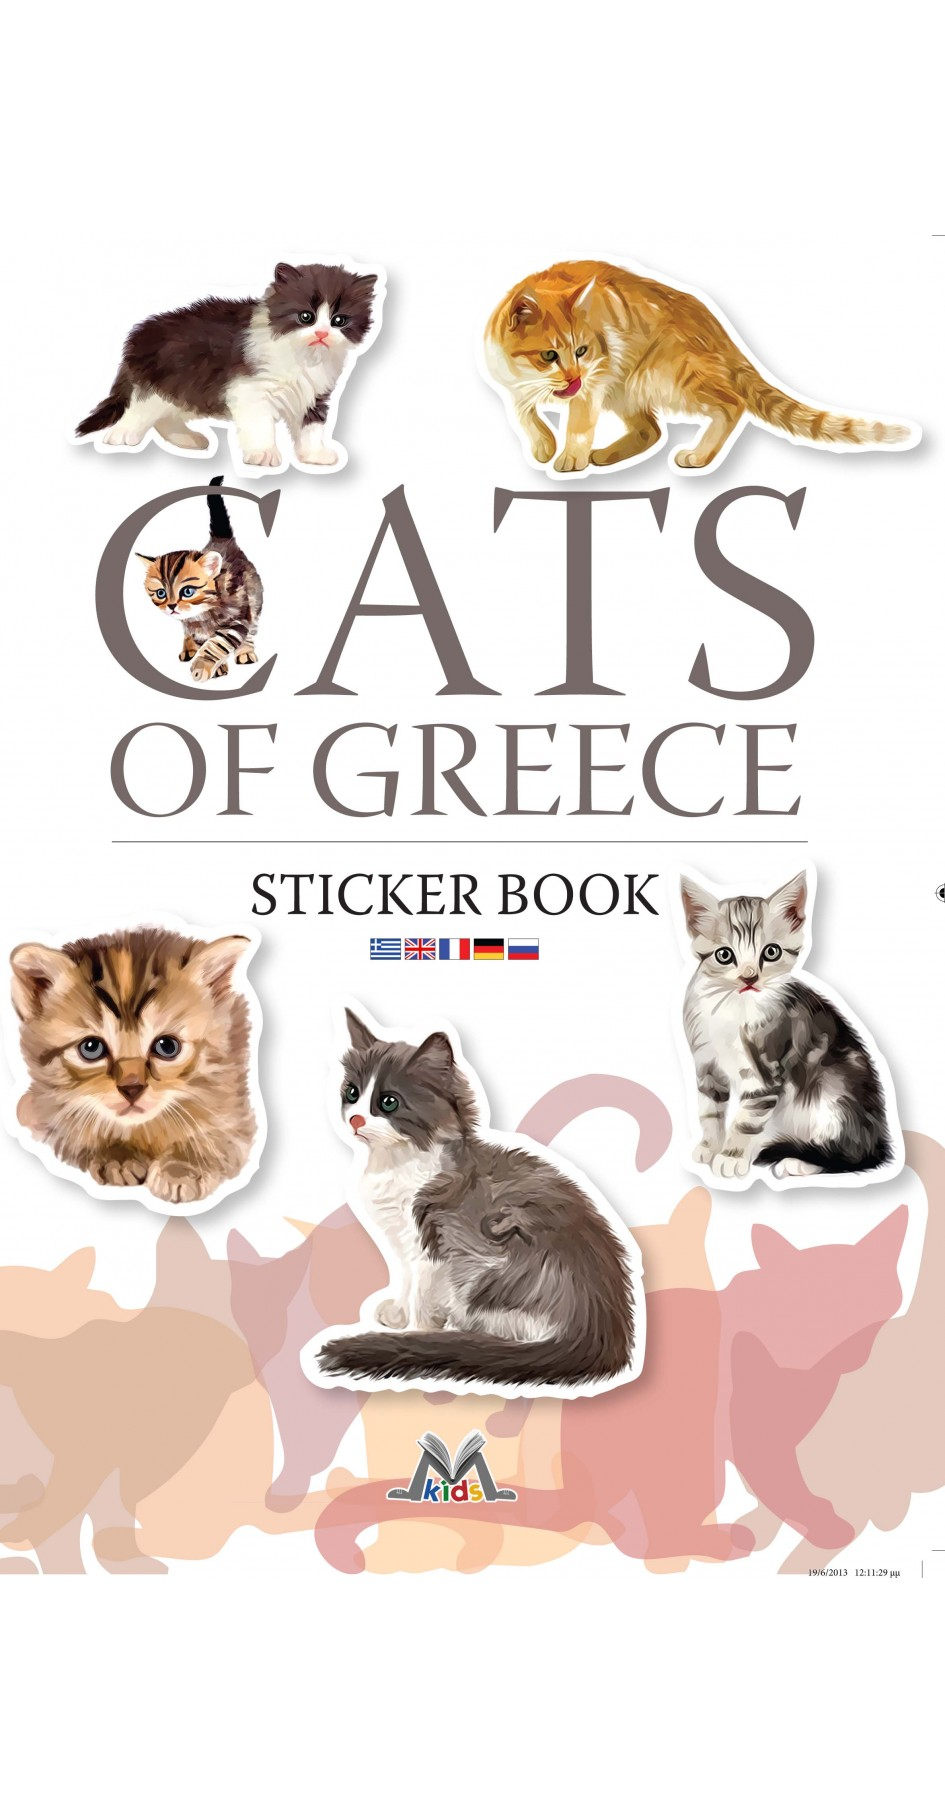 Cats of Greece, Sticker book